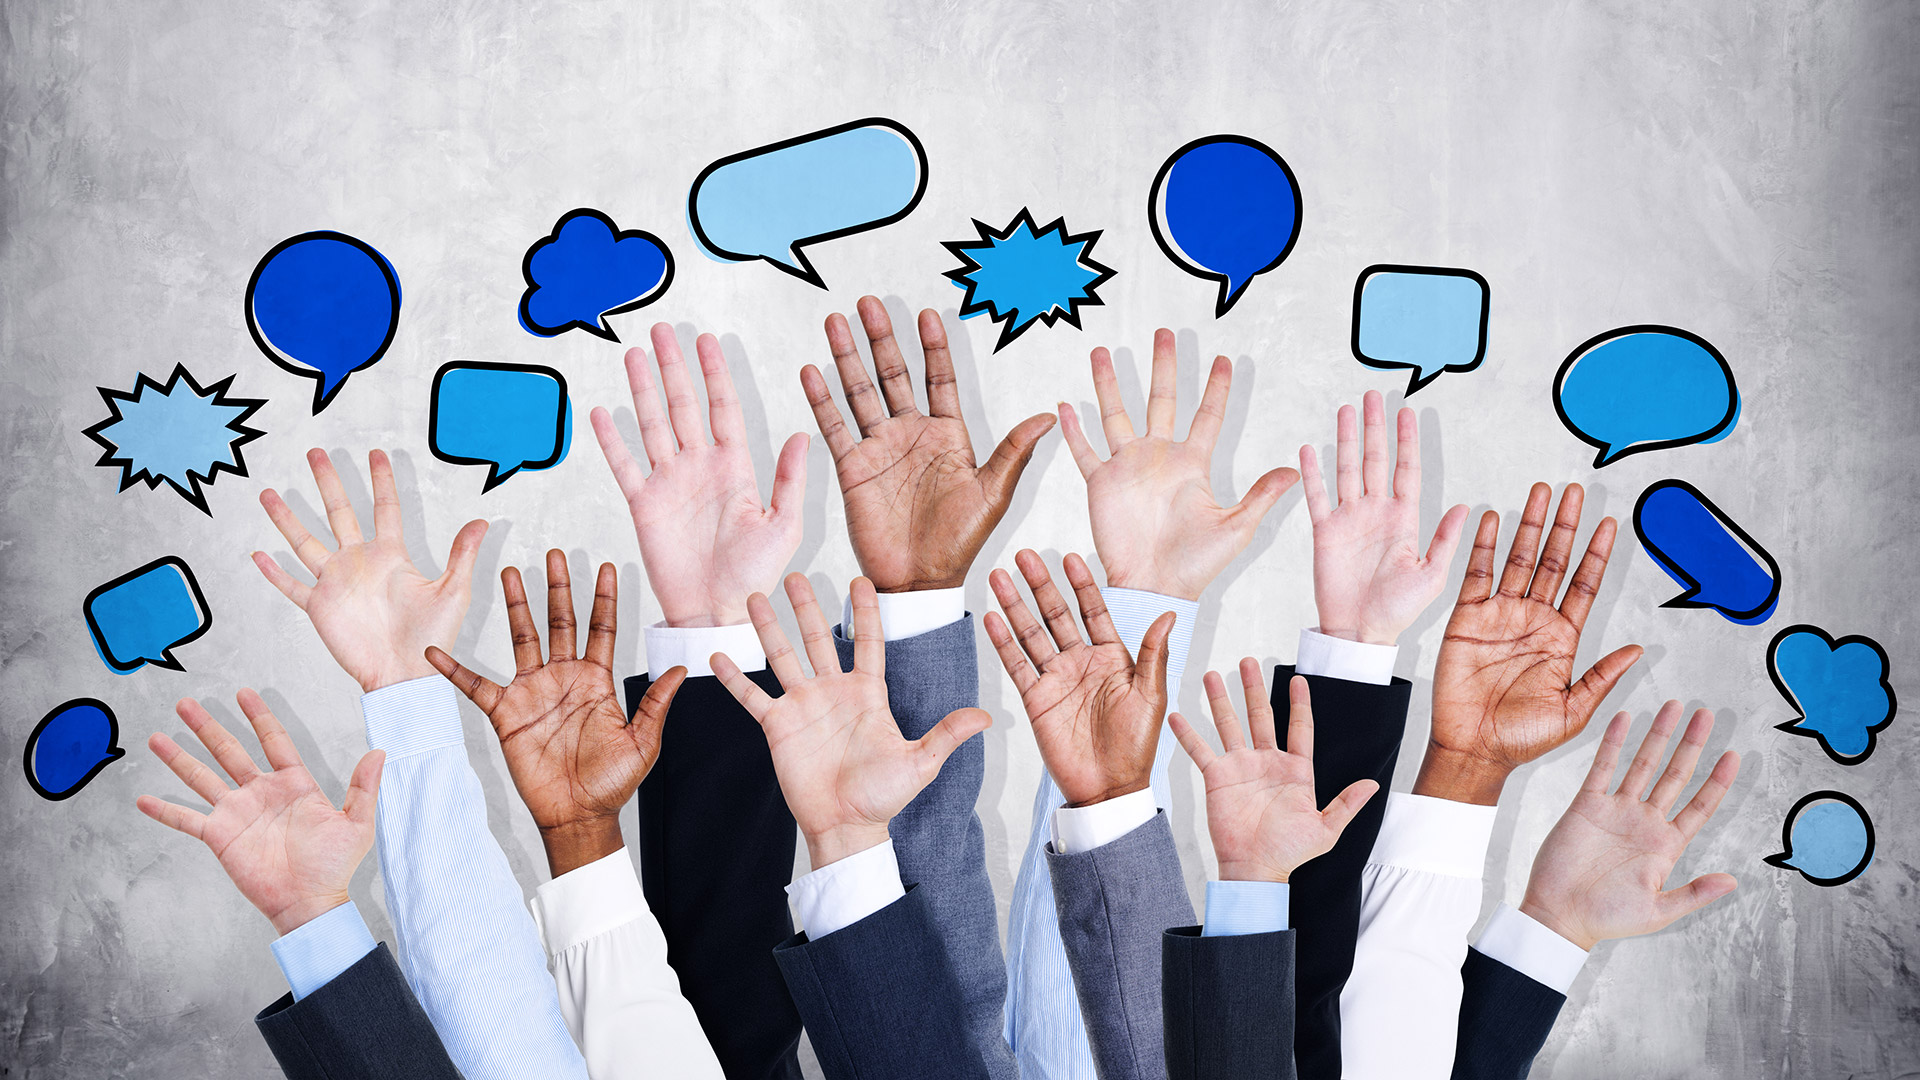 Engage with your audience, and find out what they need